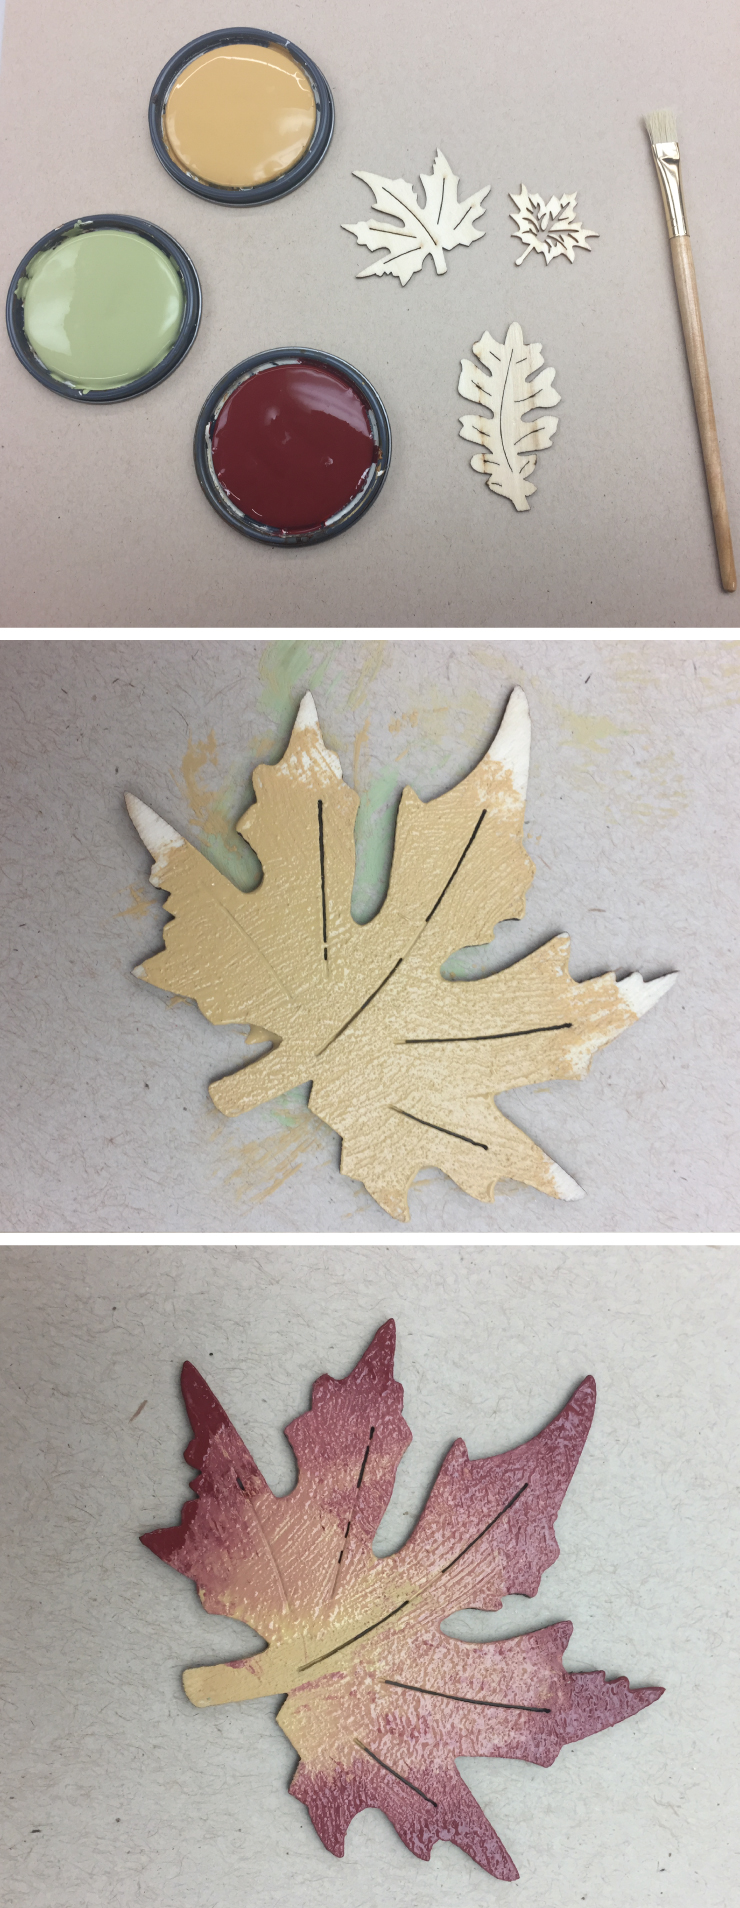 Three pictures showing the steps for painting the wood leaves. First picture shows yellow, green and red paint, wood leaves and small paint brush. Second picture shows one leave with yellow in the center Third picture shows same yellow leaf with red paint added. The red is darker on the edges and lighter as it meets the yellow color